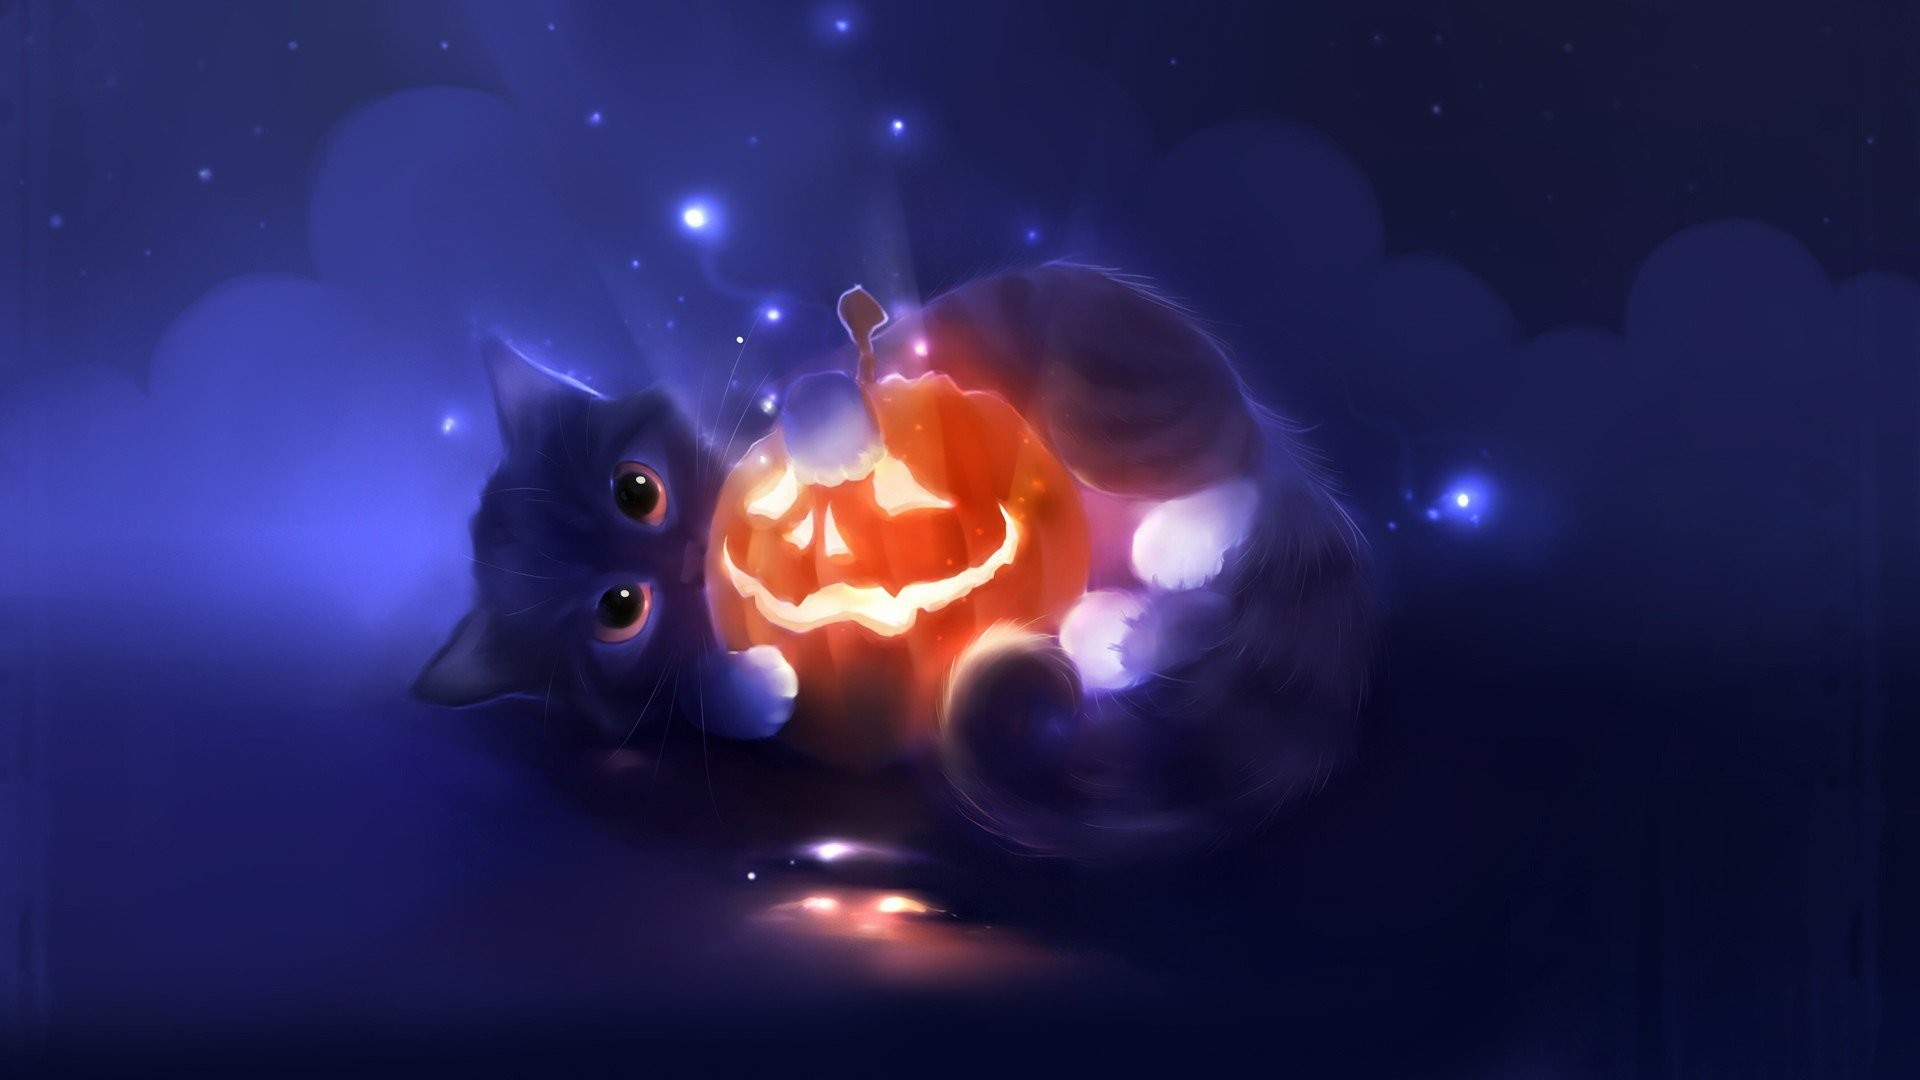 Space cats hd wallpaper 78 images - Space 80s wallpaper ...